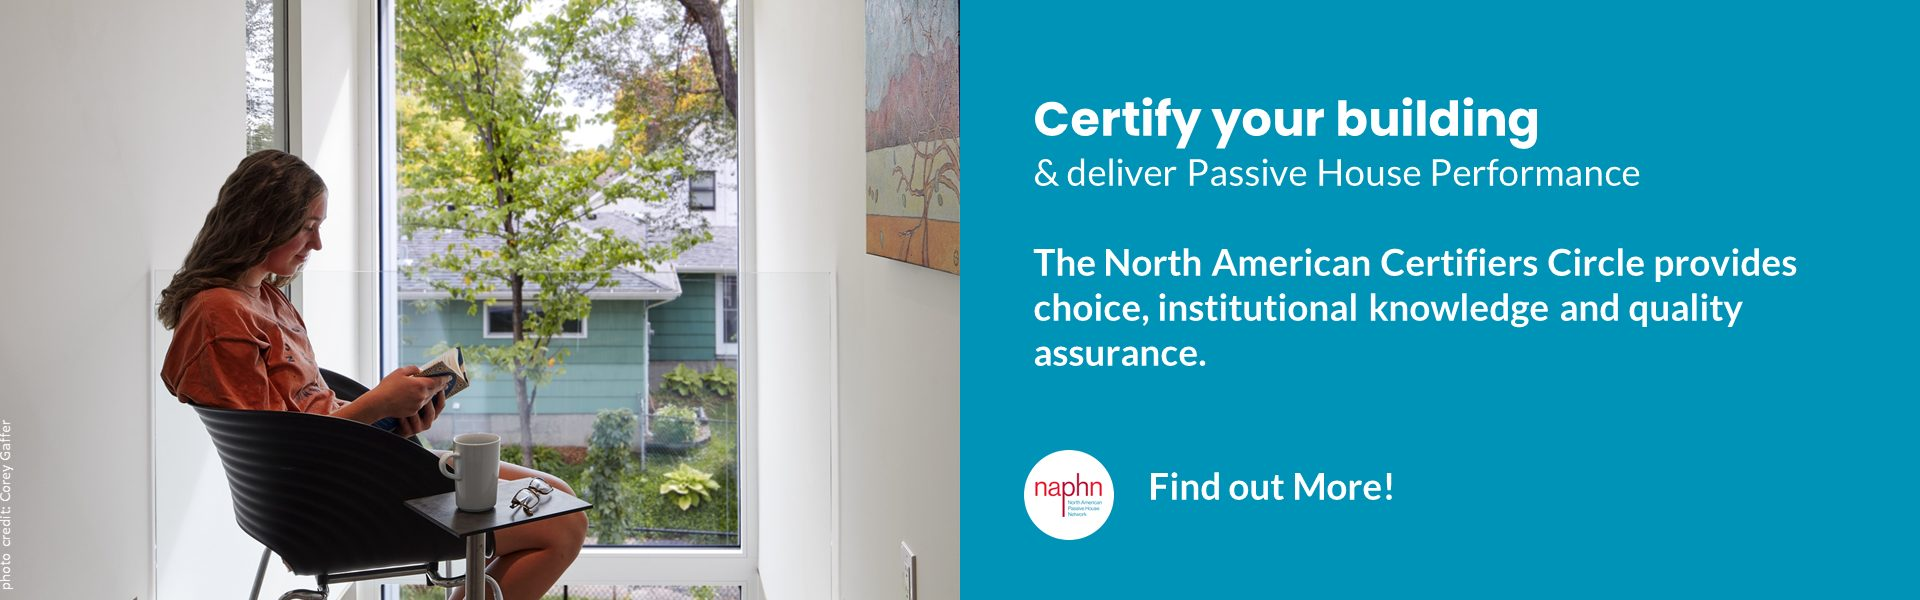 Certify your Building